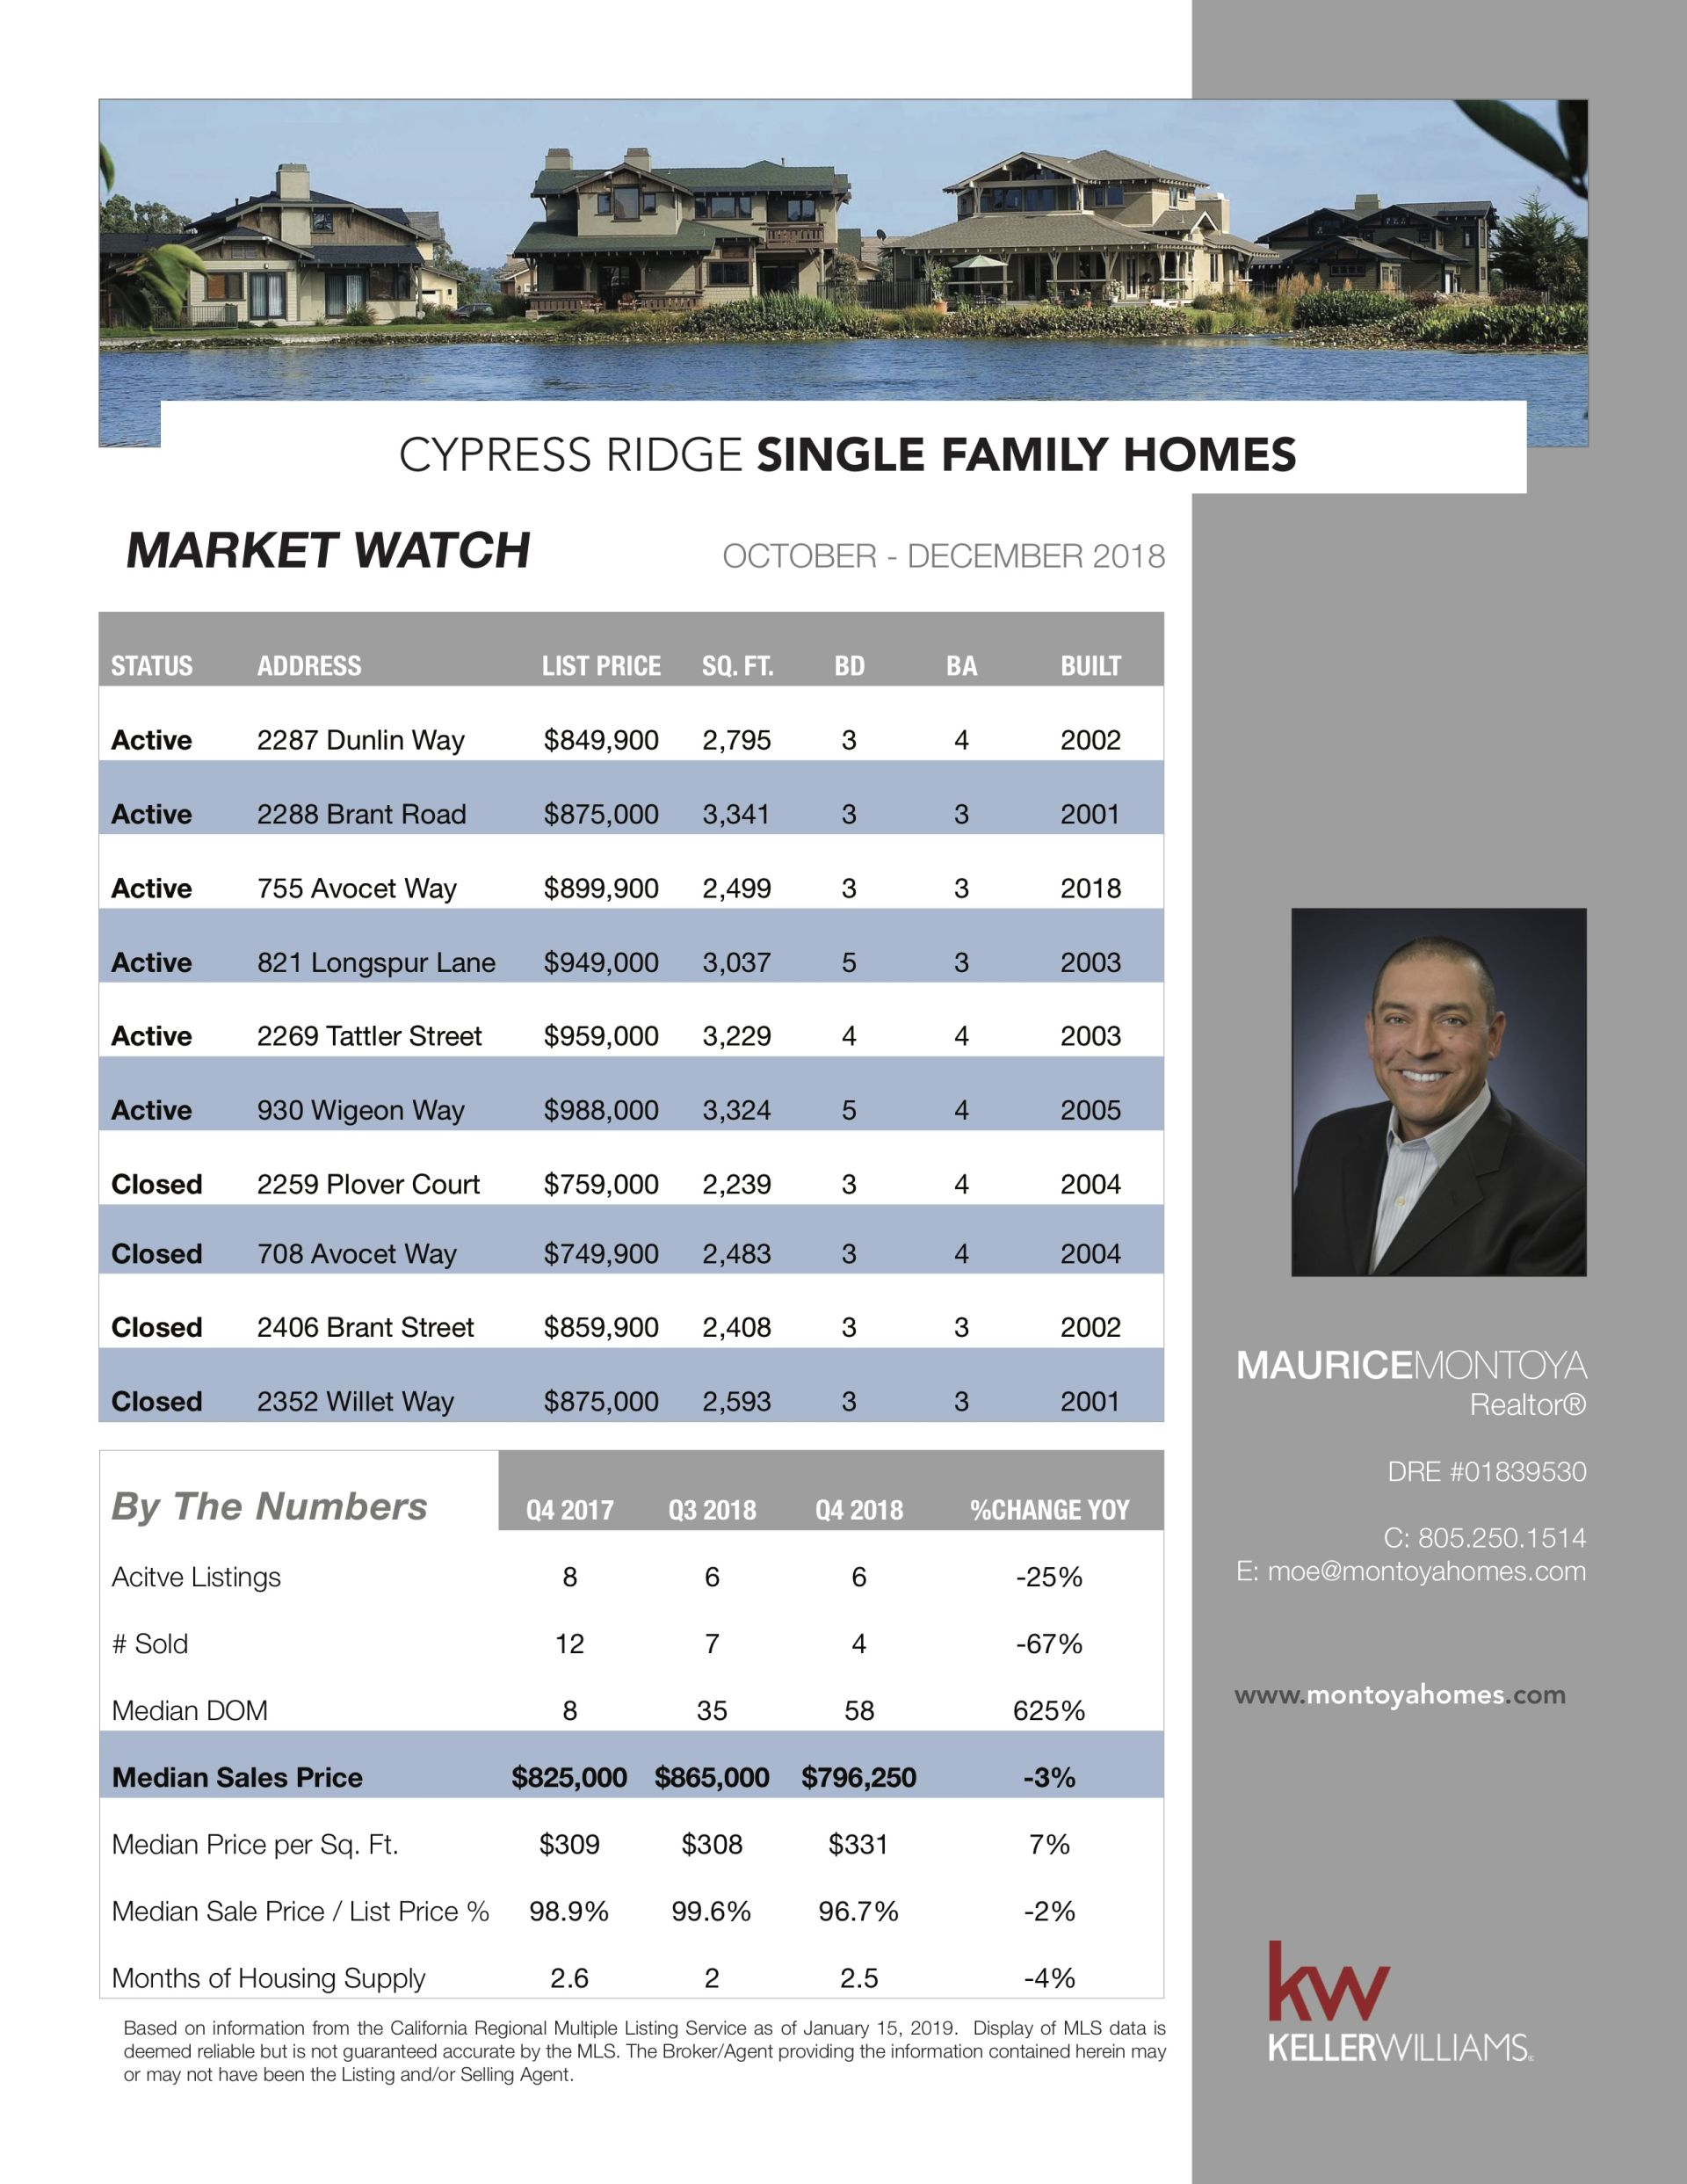 Cypress Ridge: Market Watch January 2019